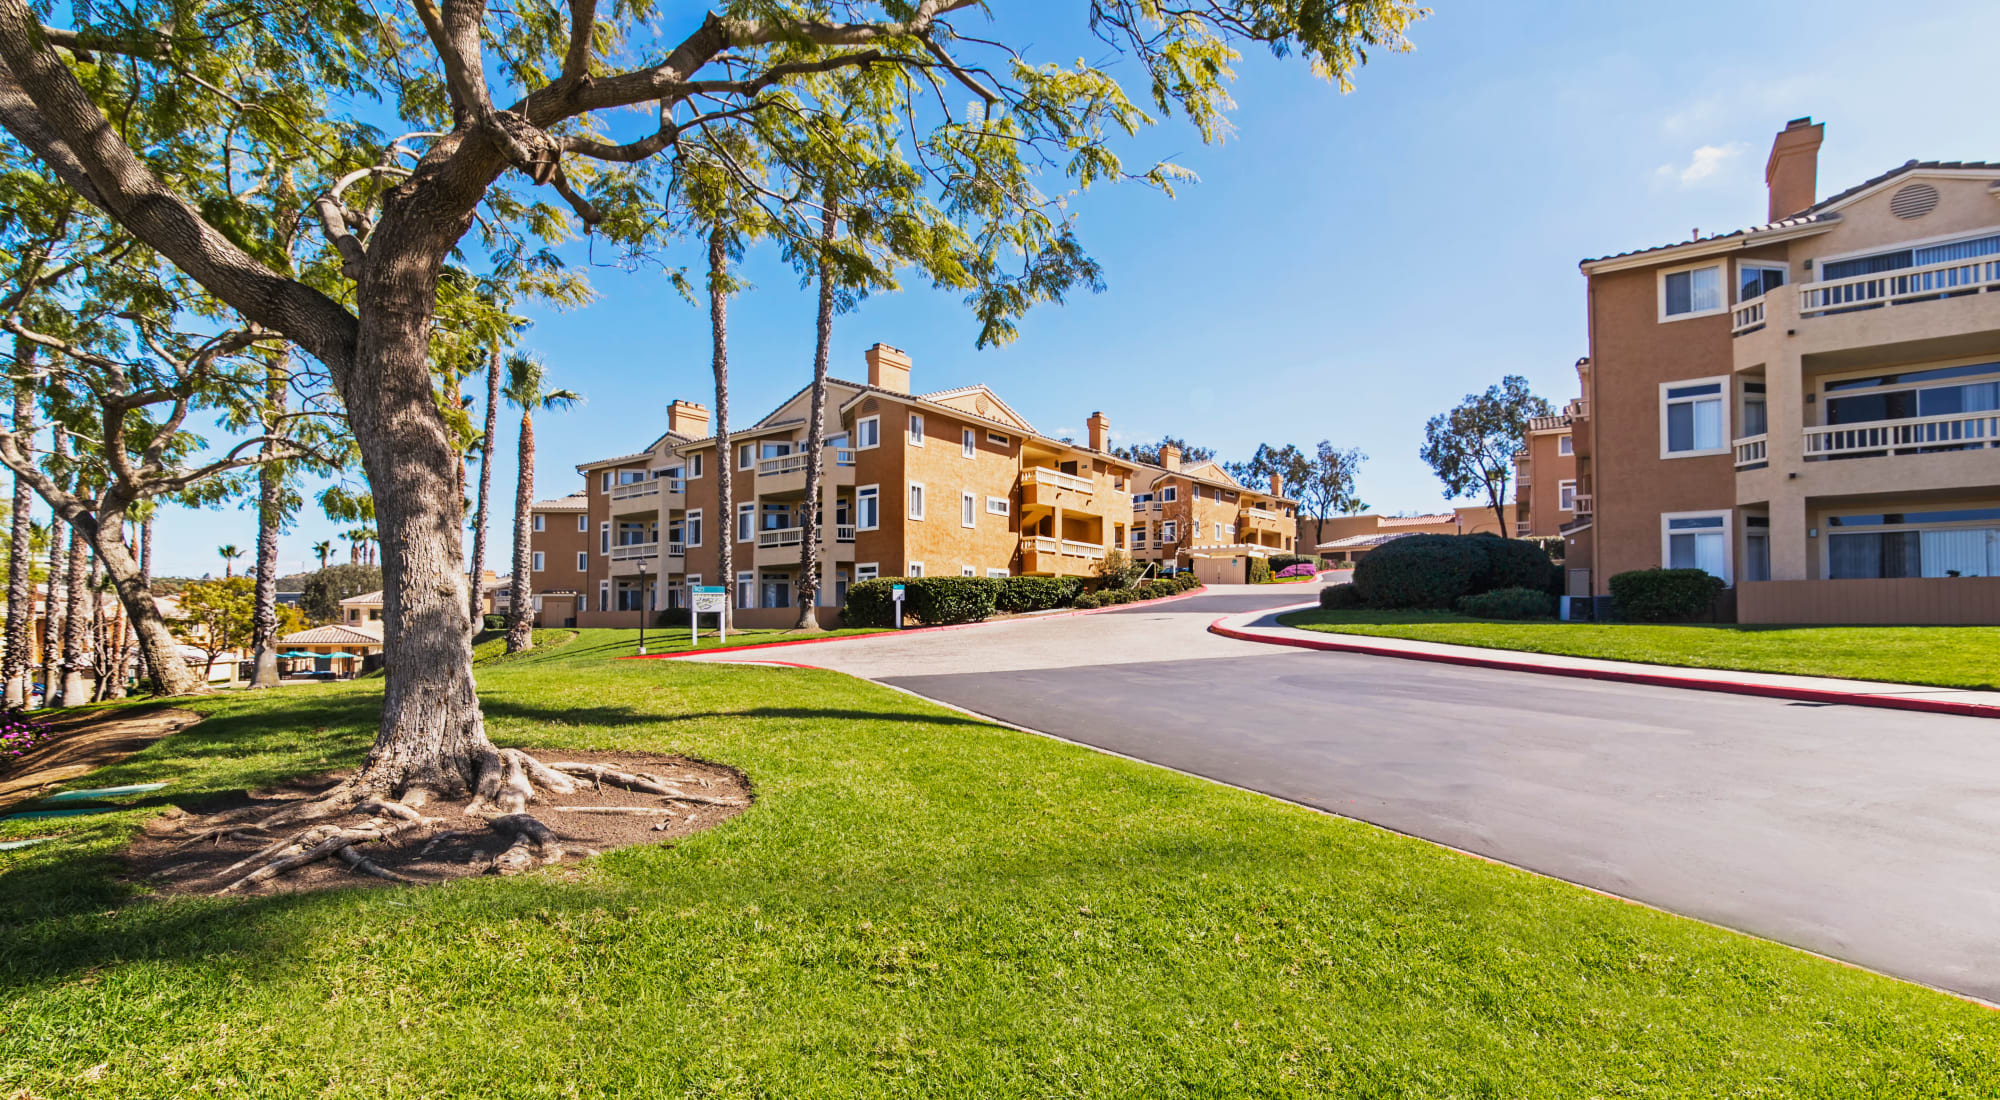 Neighborhood at Sofi Canyon Hills in San Diego, California